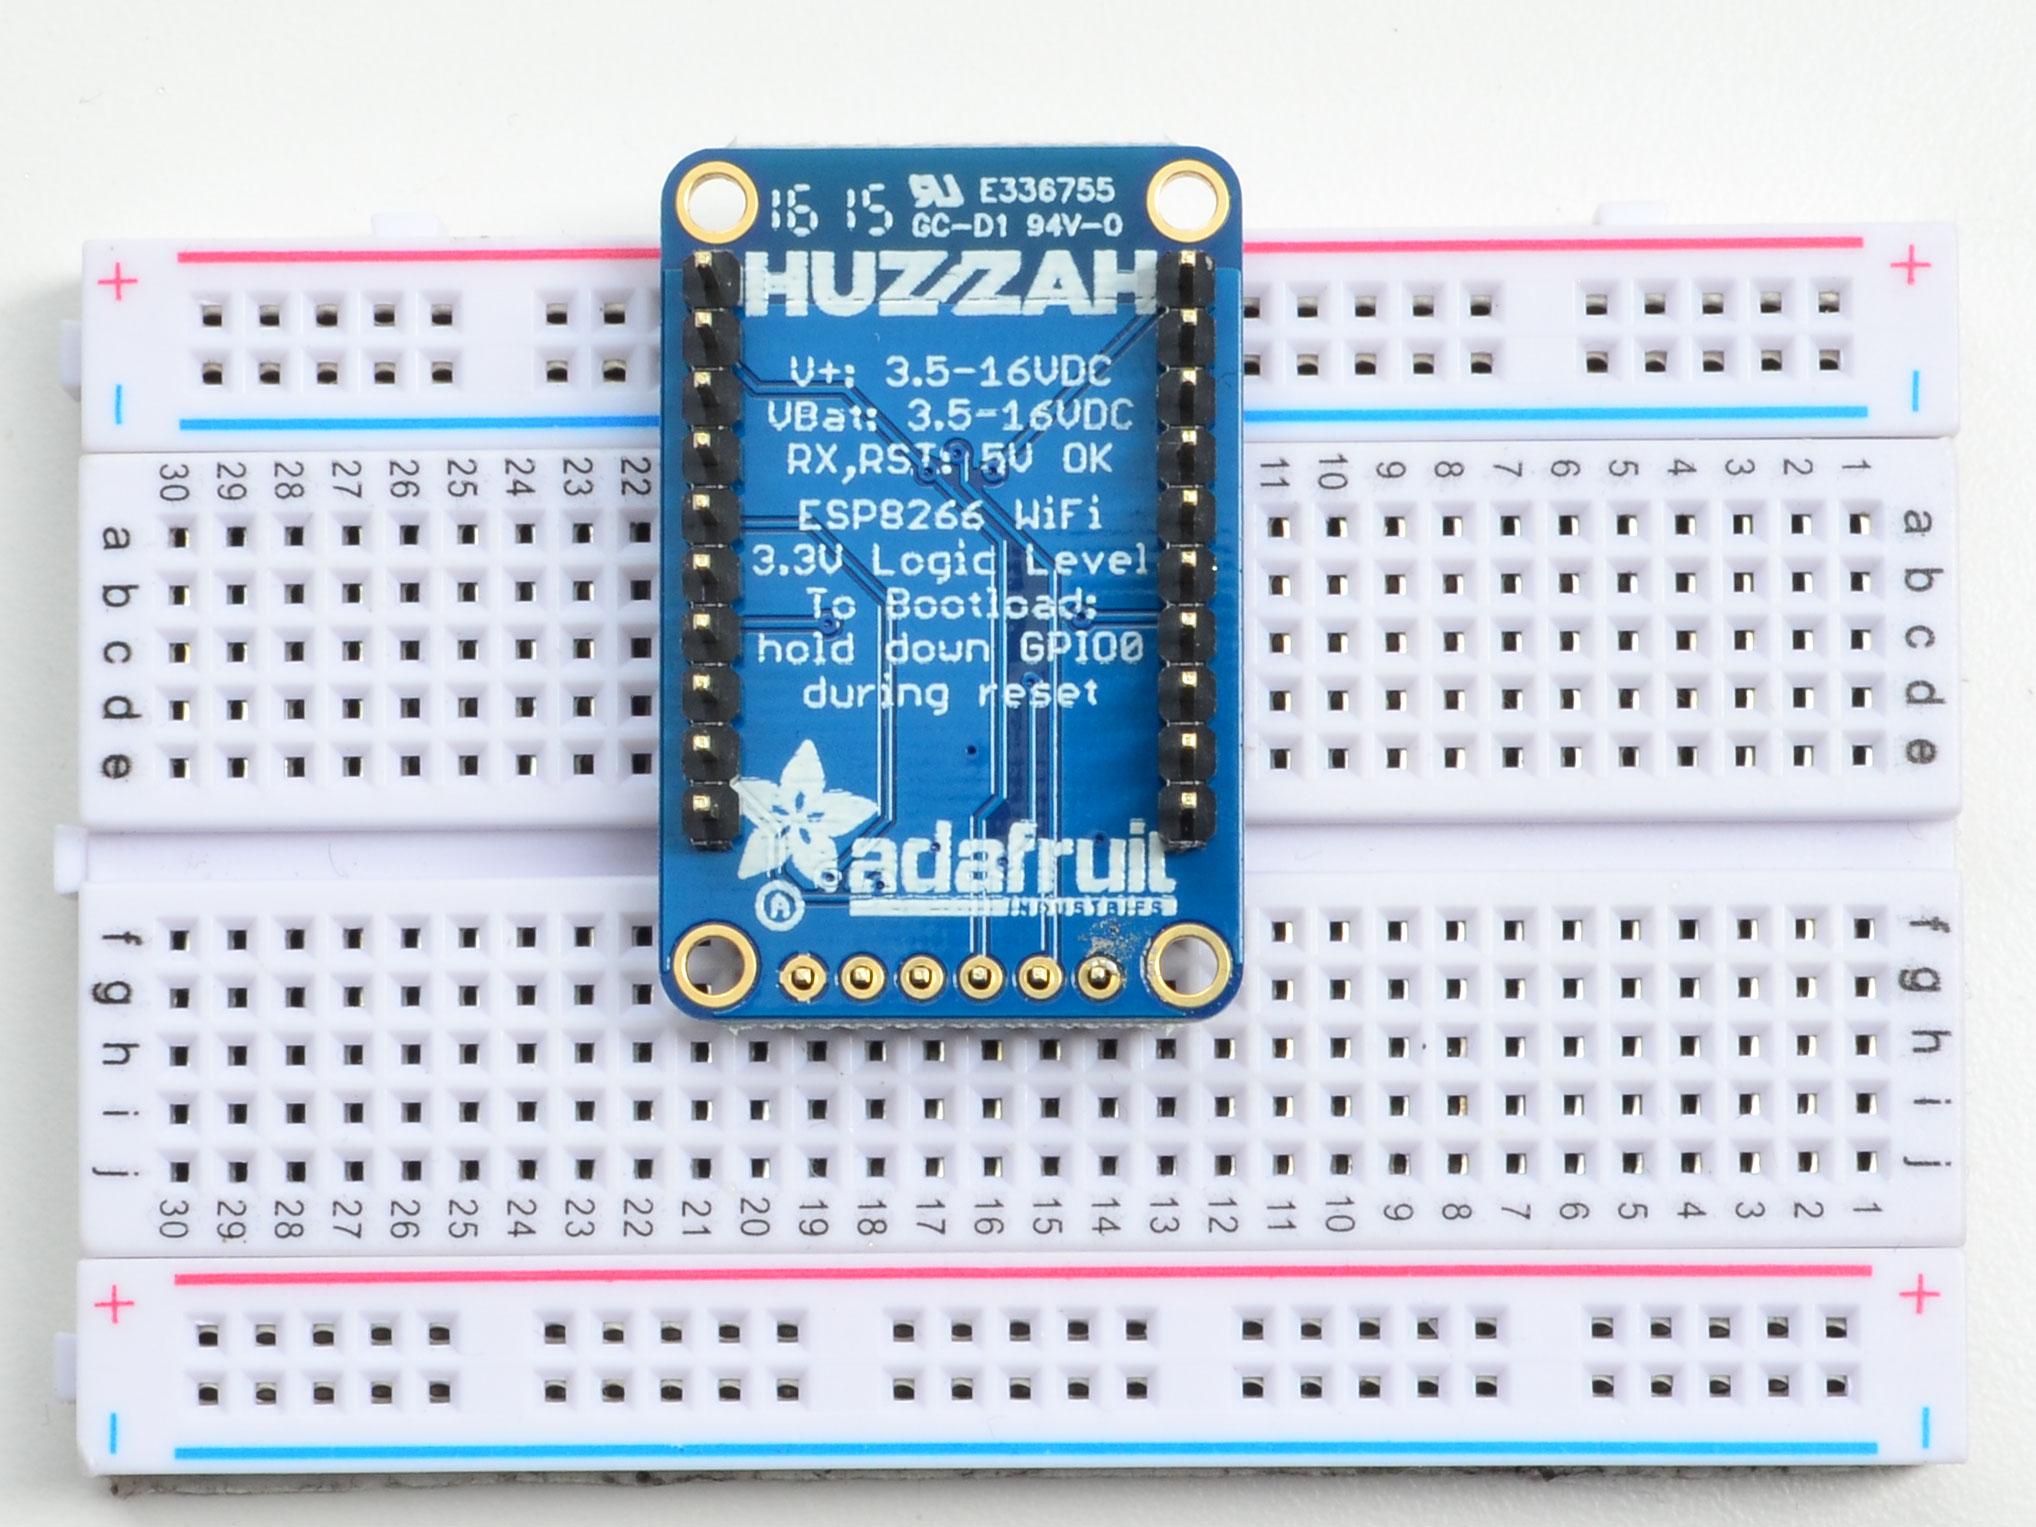 adafruit_products_place2.jpg